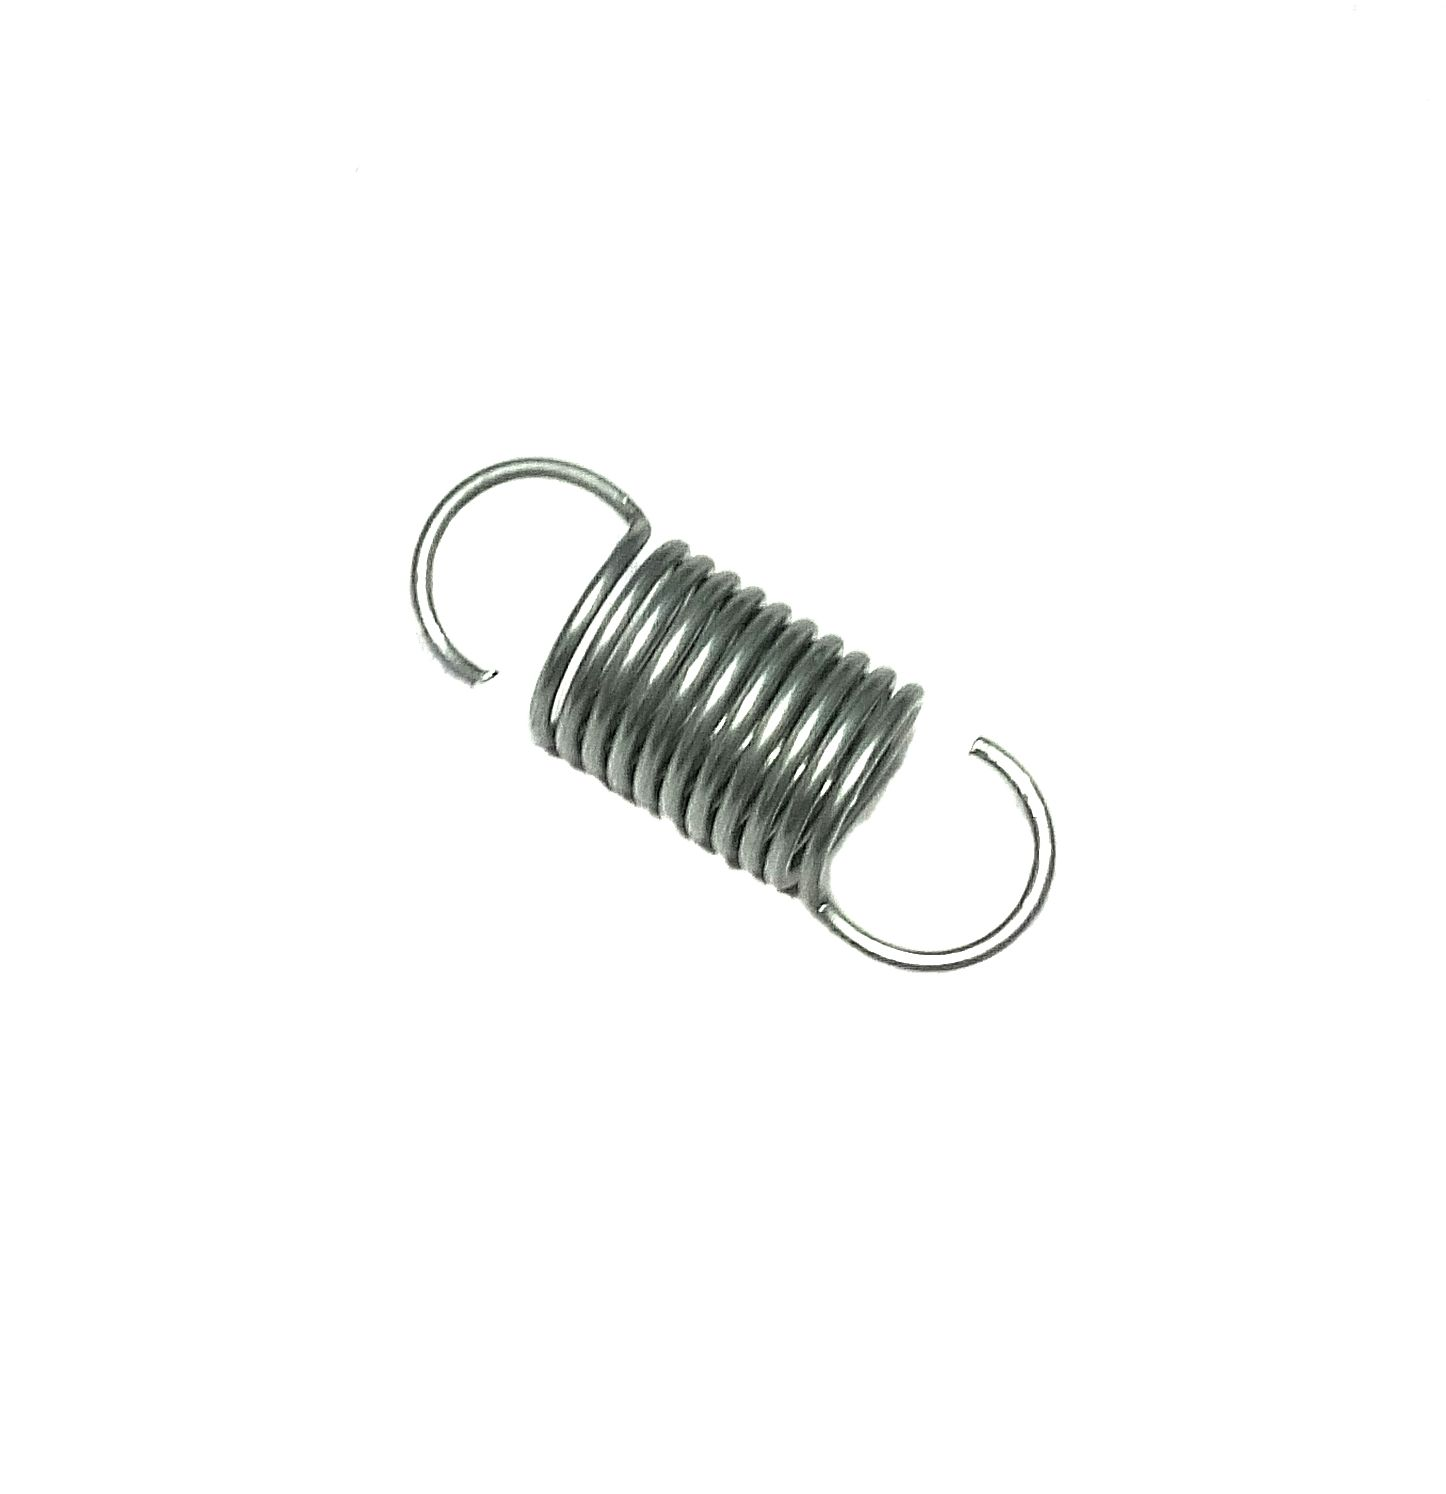 Governor Spring Briggs And Stratton Engine Part